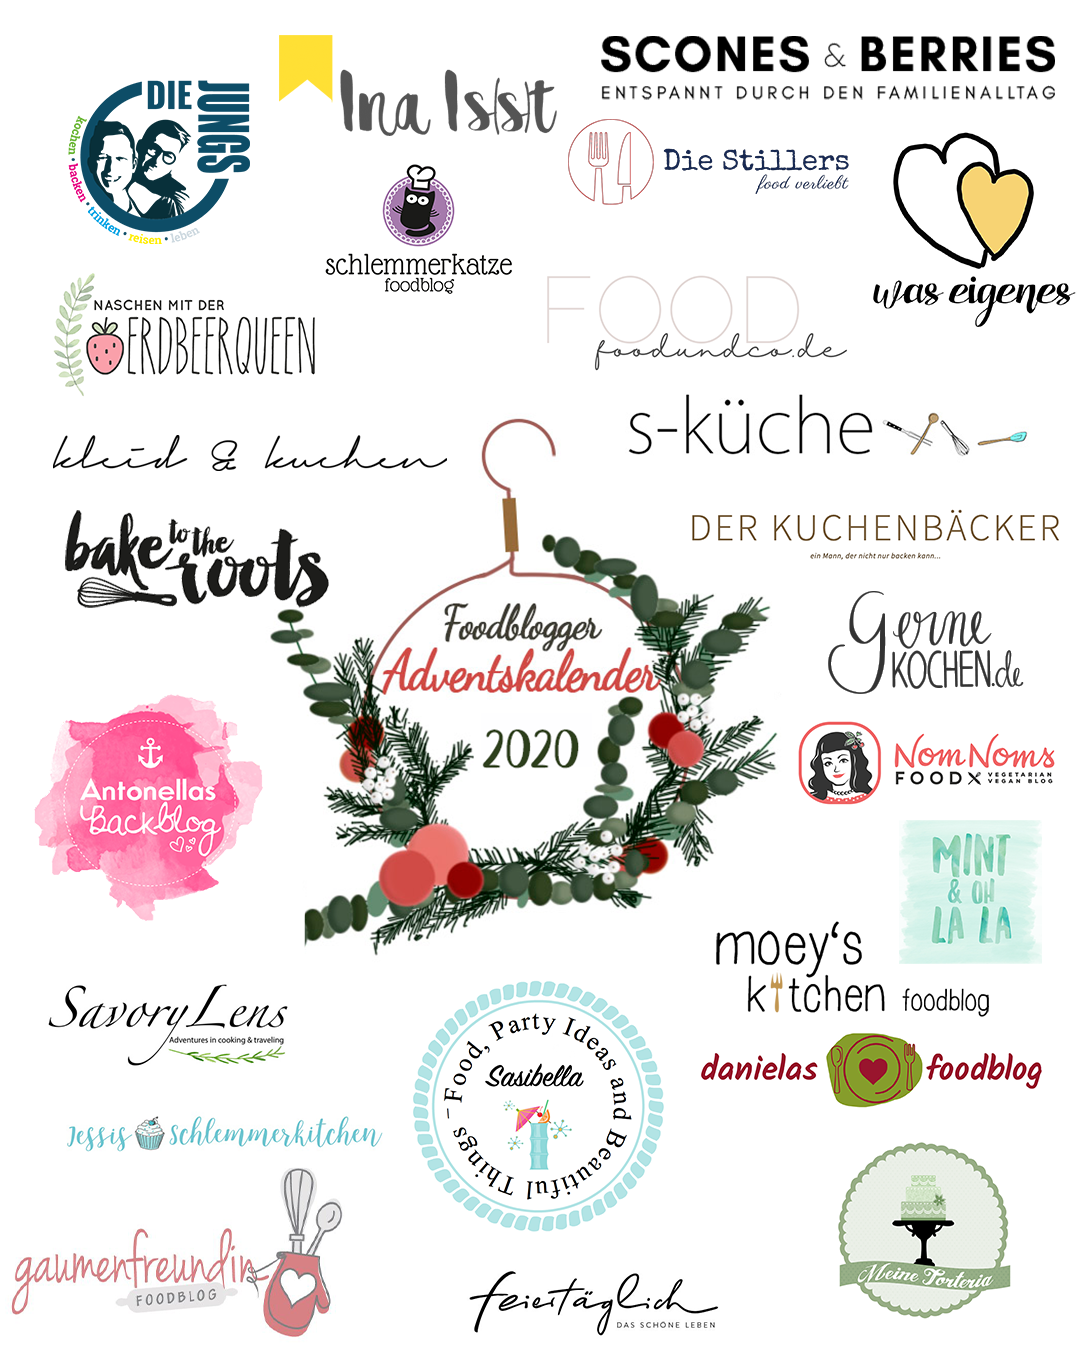 Food Blogger Adventskalender 2020